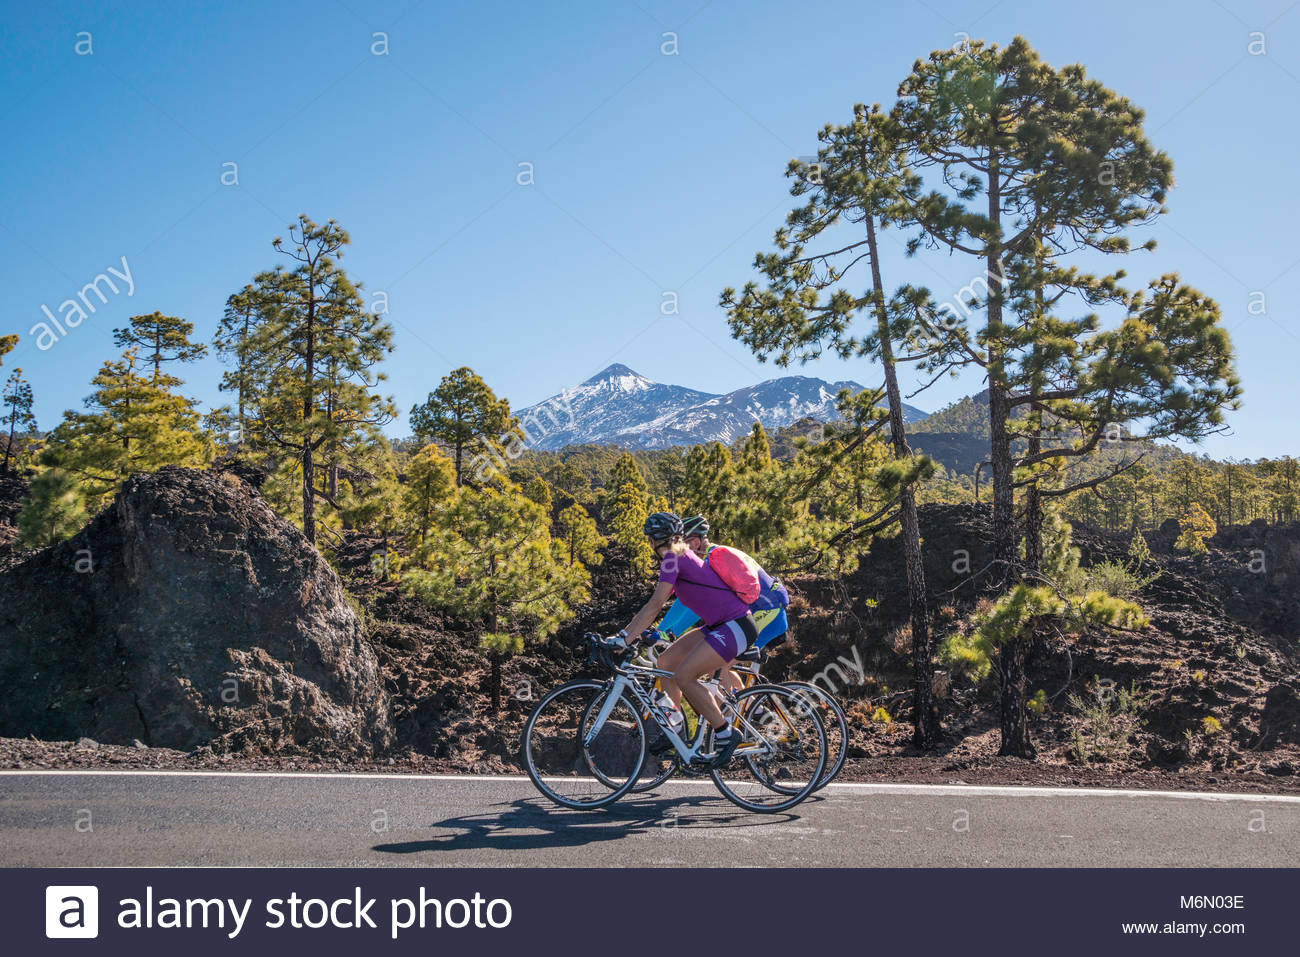 cyclists-on-the-road-past-snow-capped-mount-teide-M6N03E.jpg